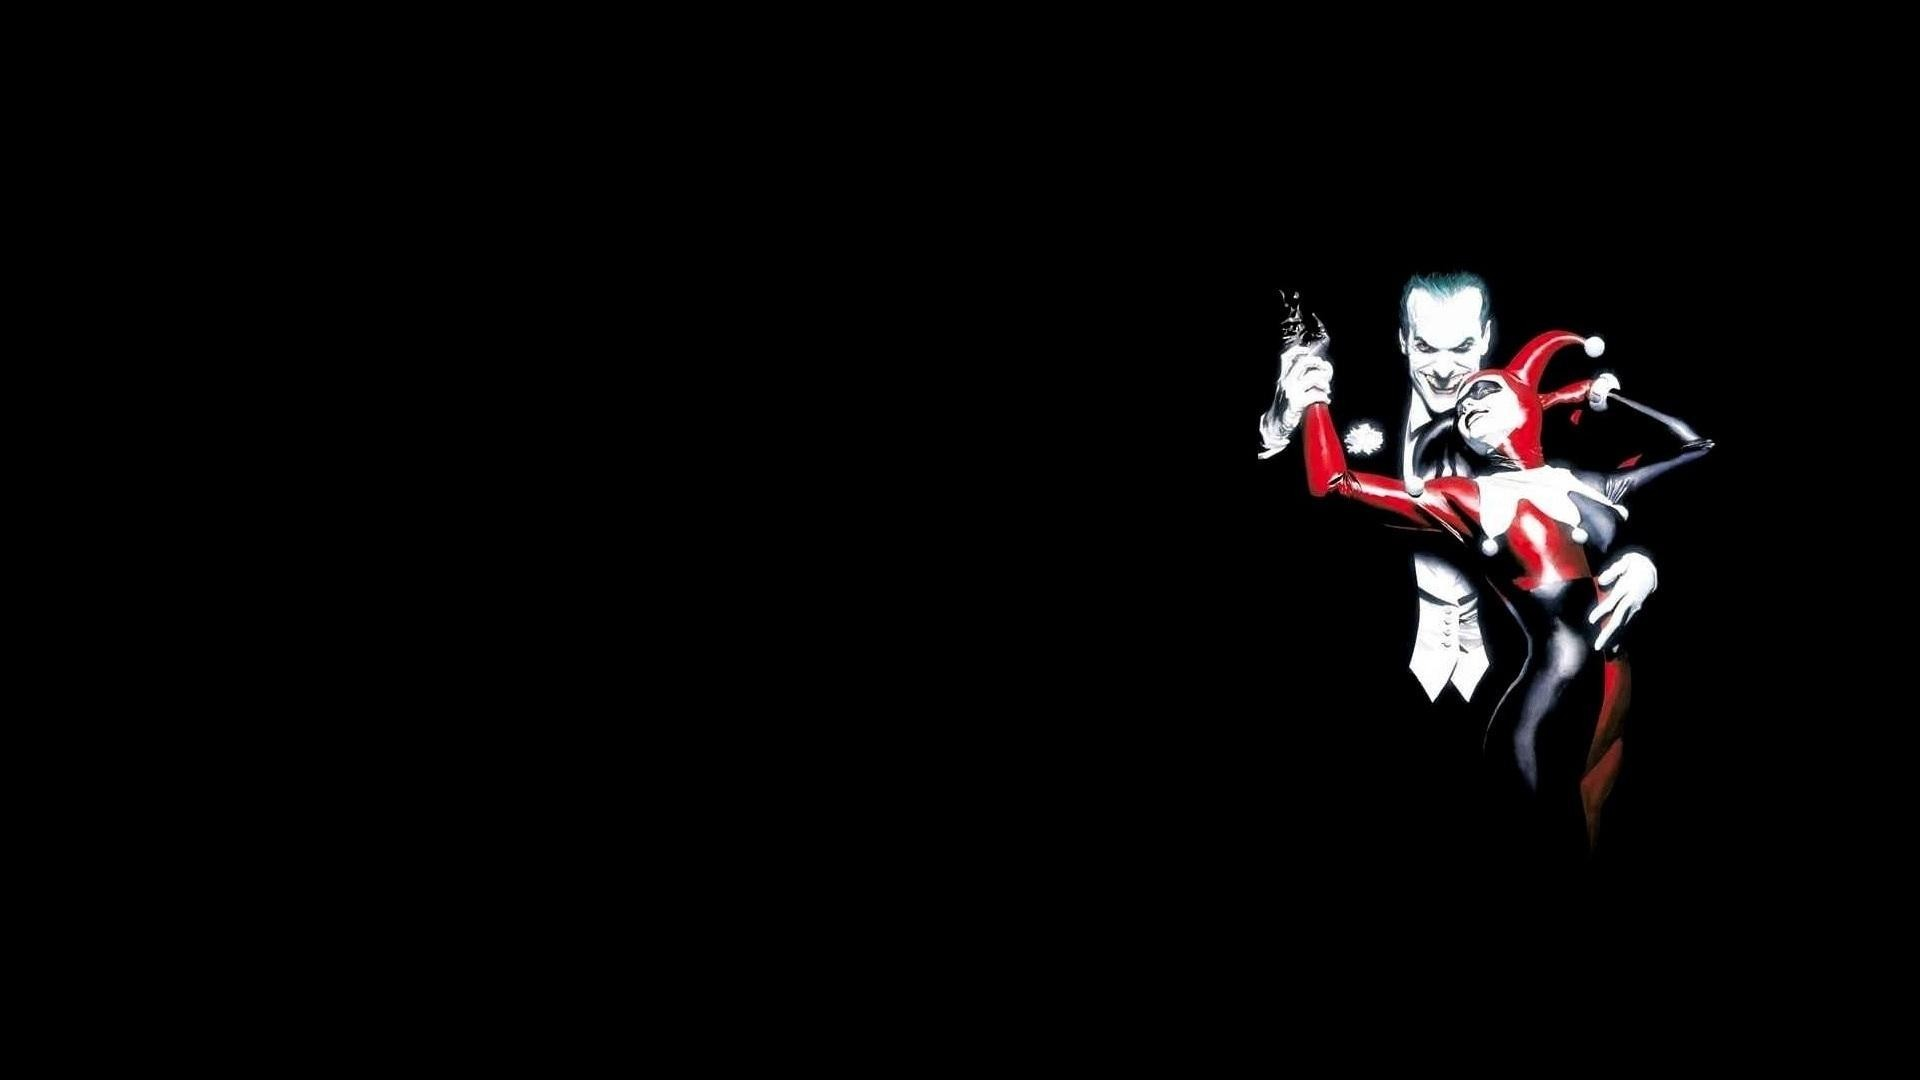 Harley Quinn And Joker Wallpaper 1 Download Free Beautiful Full HD